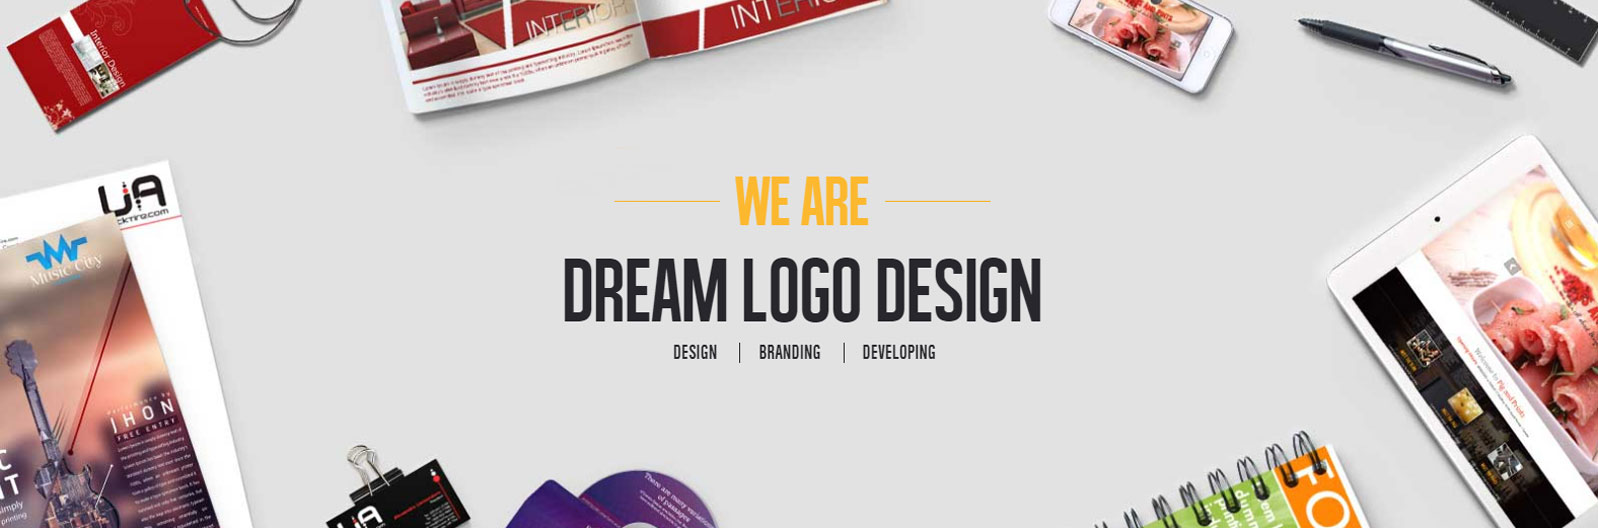 Vanloon Fitness 3D Logo Design – DreamLogoDesign